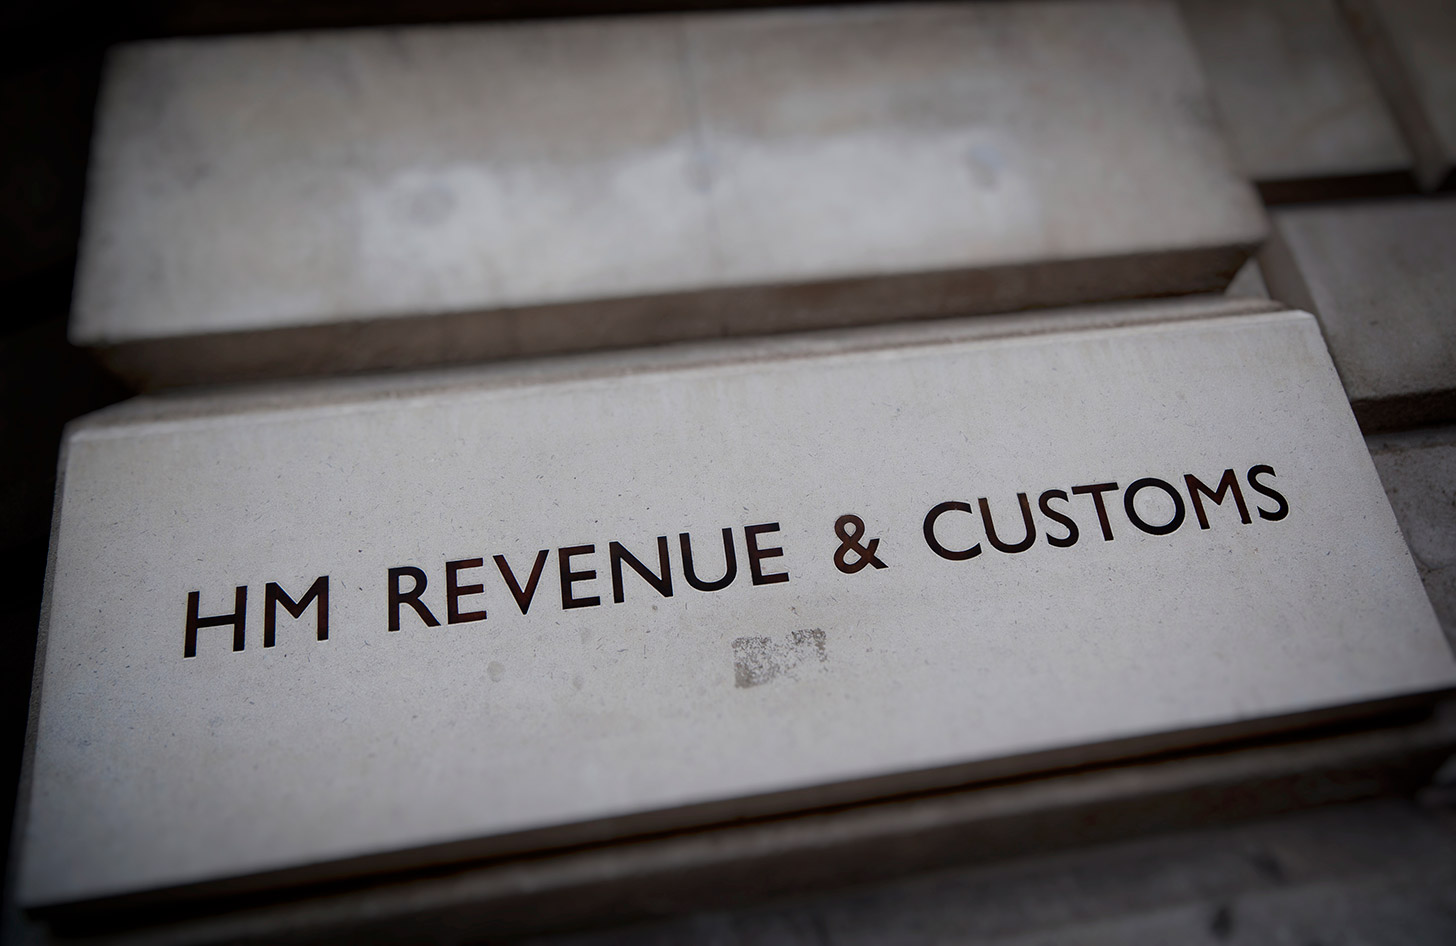 Limited Company Director's Responsibilities - what you need to file and when with HMRC and Companies House : Crunch - image of HMRC sign on a wall